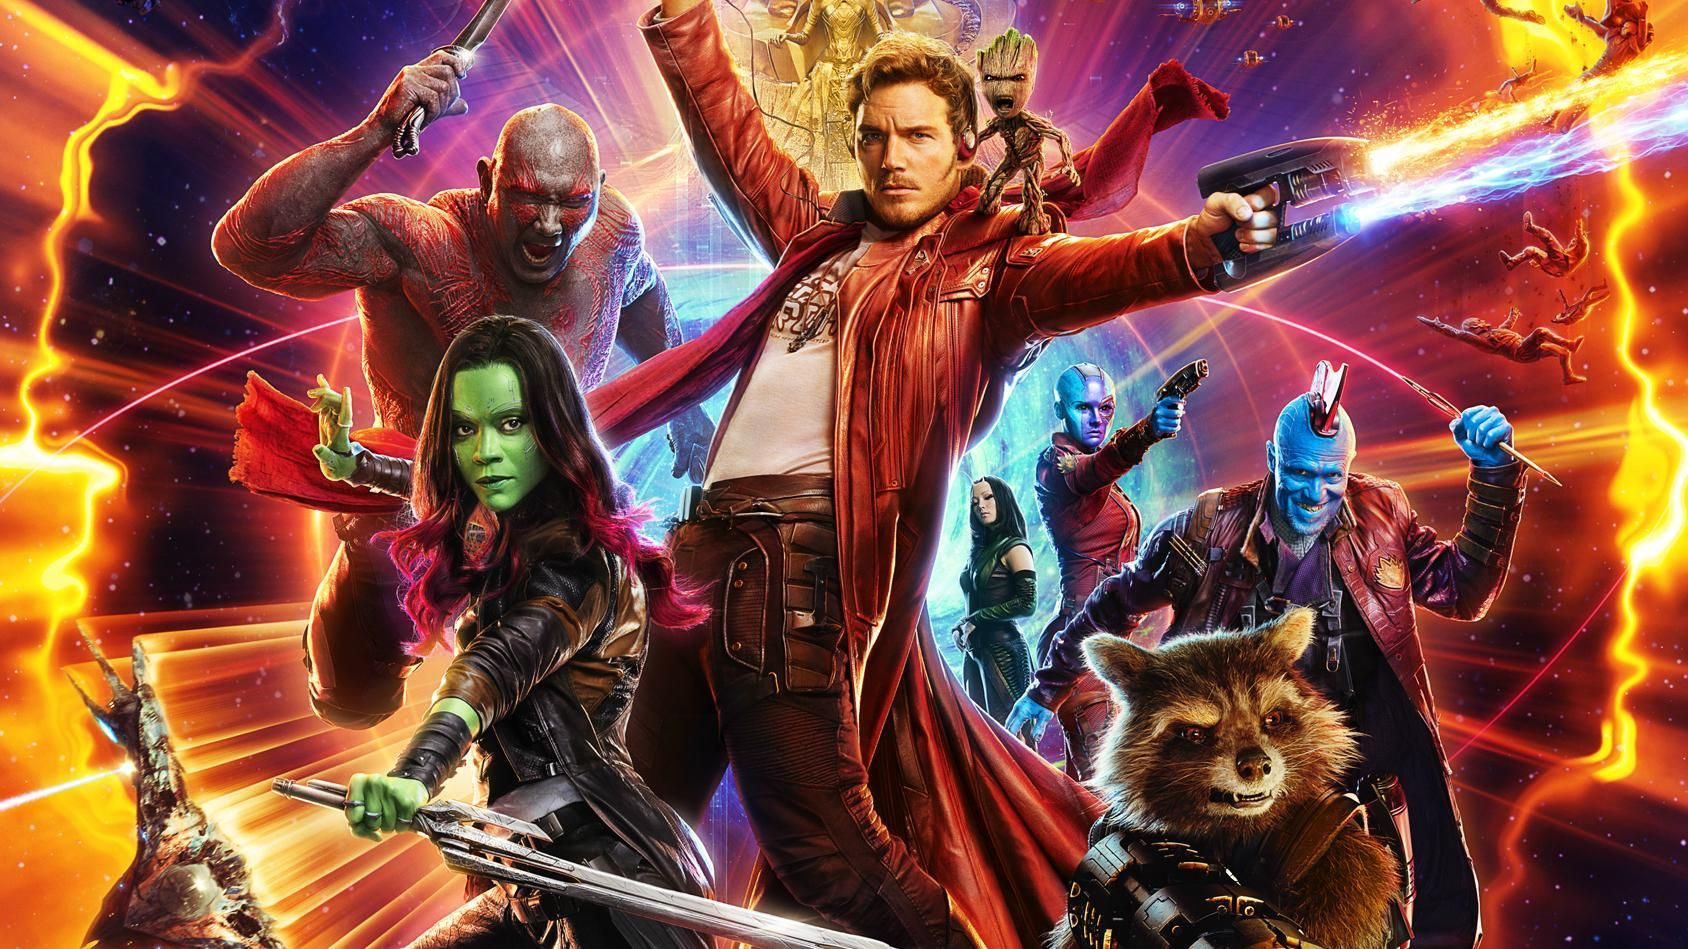 guardians of the galaxy movies on Disney+